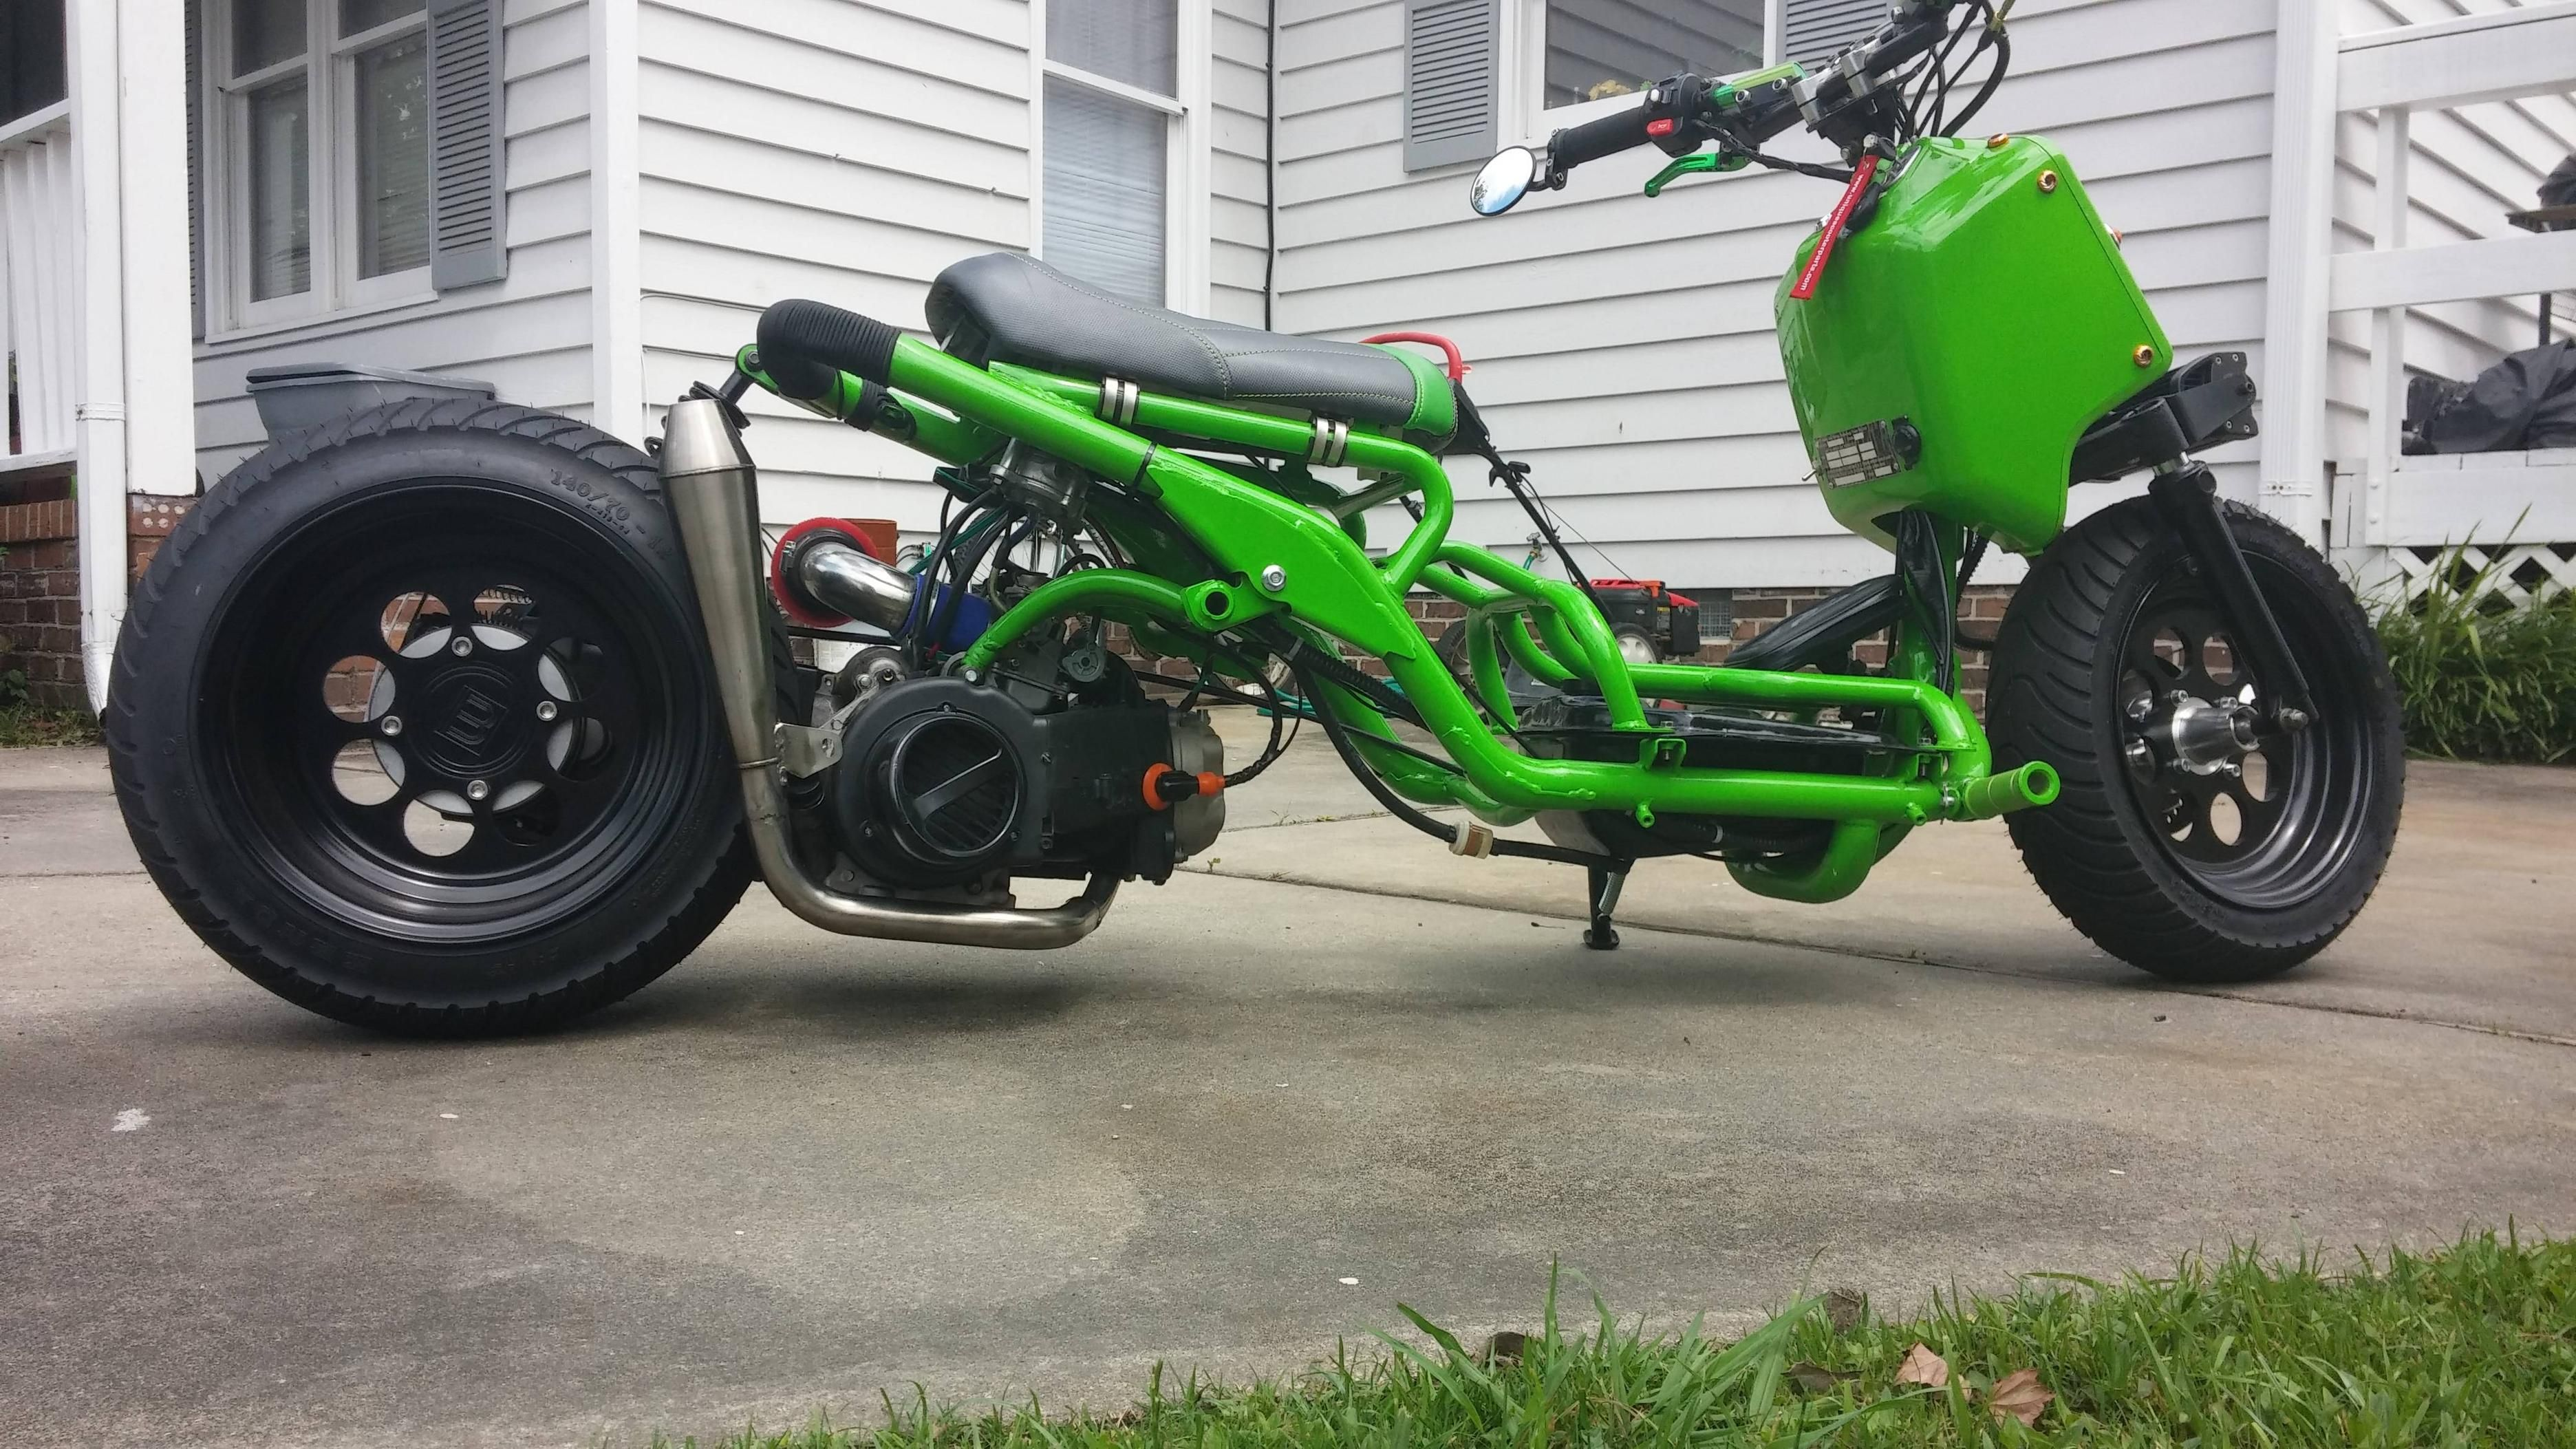 Mad Dog Ruckus Clone New Exhaust Mad Dog Scooter Bike Scooter